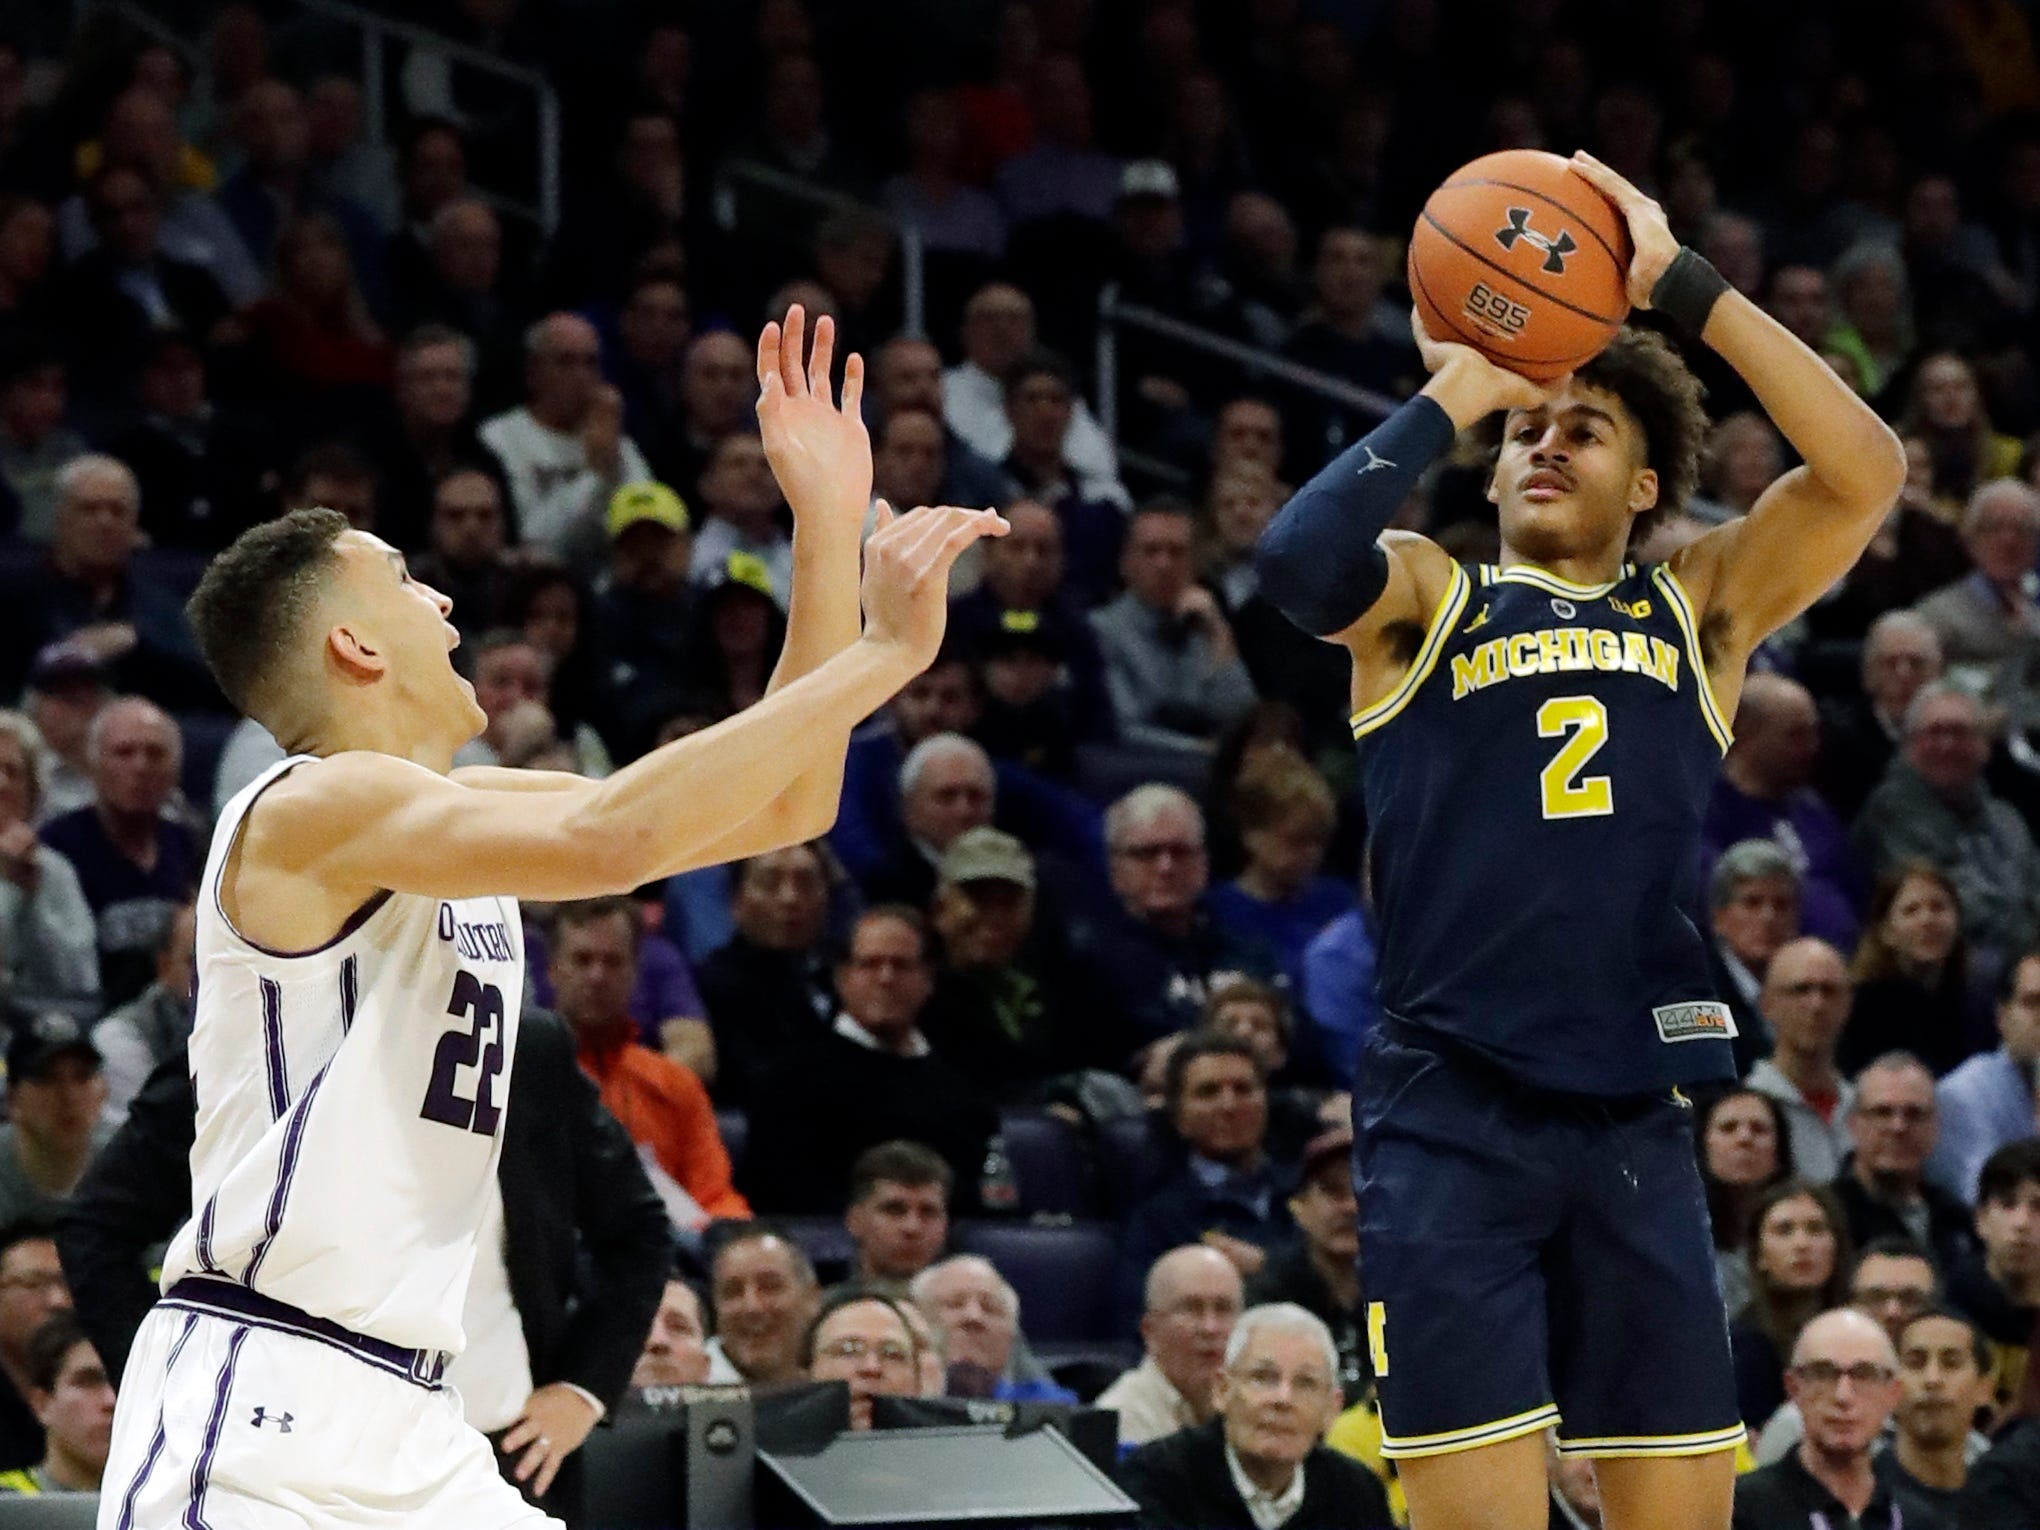 Michigan guard Jordan Poole, right, shoots against Northwestern forward Pete Nance during the first half.